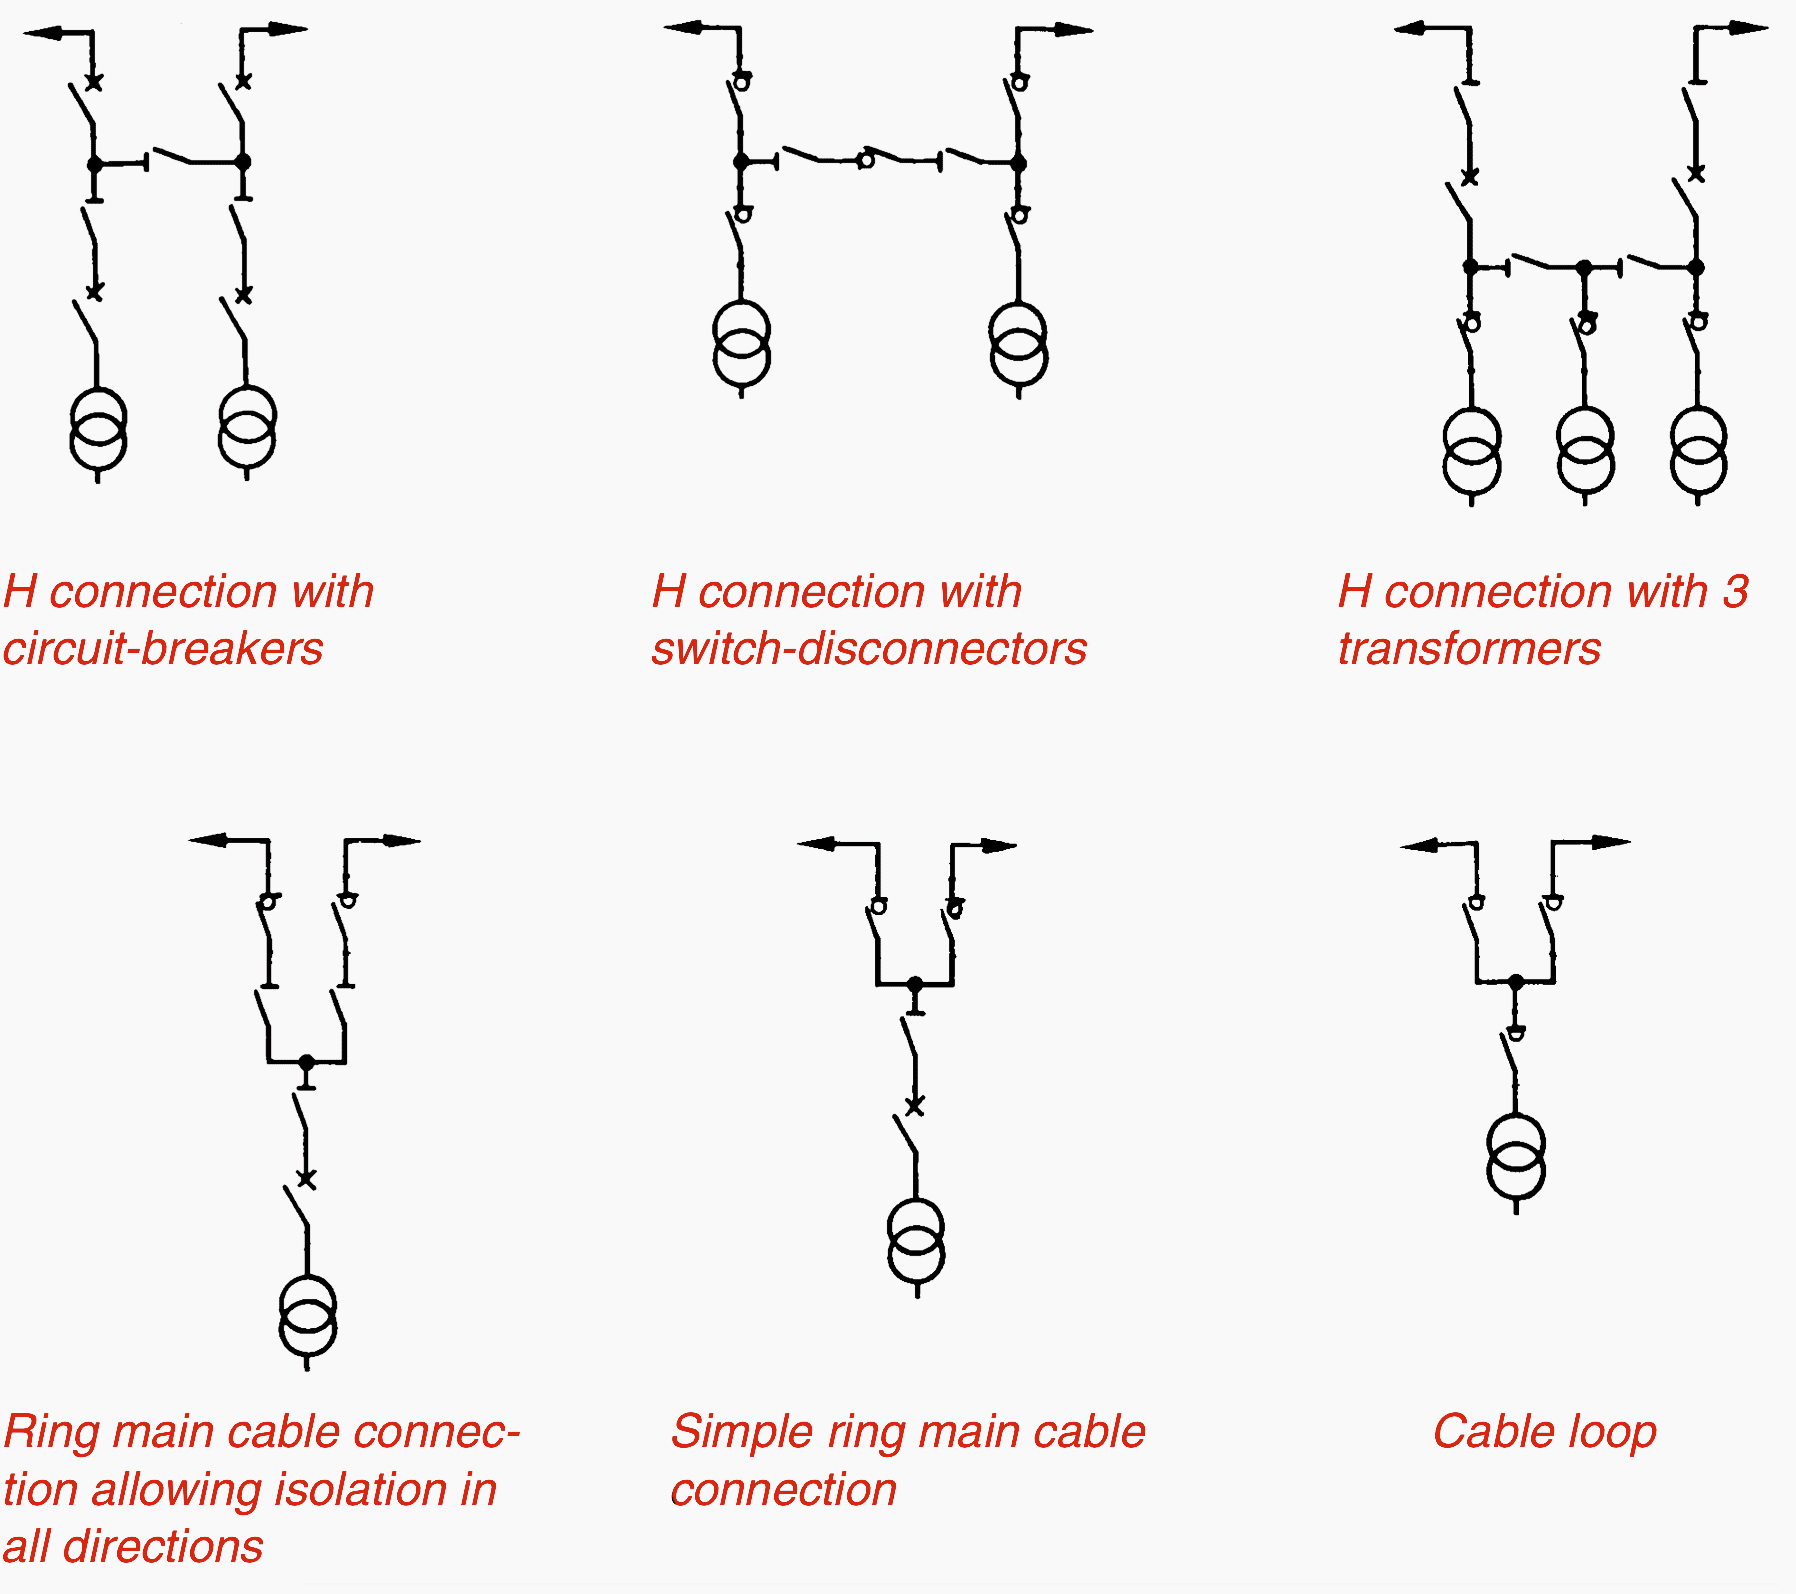 hight resolution of switch disconnectors used in load centre substations